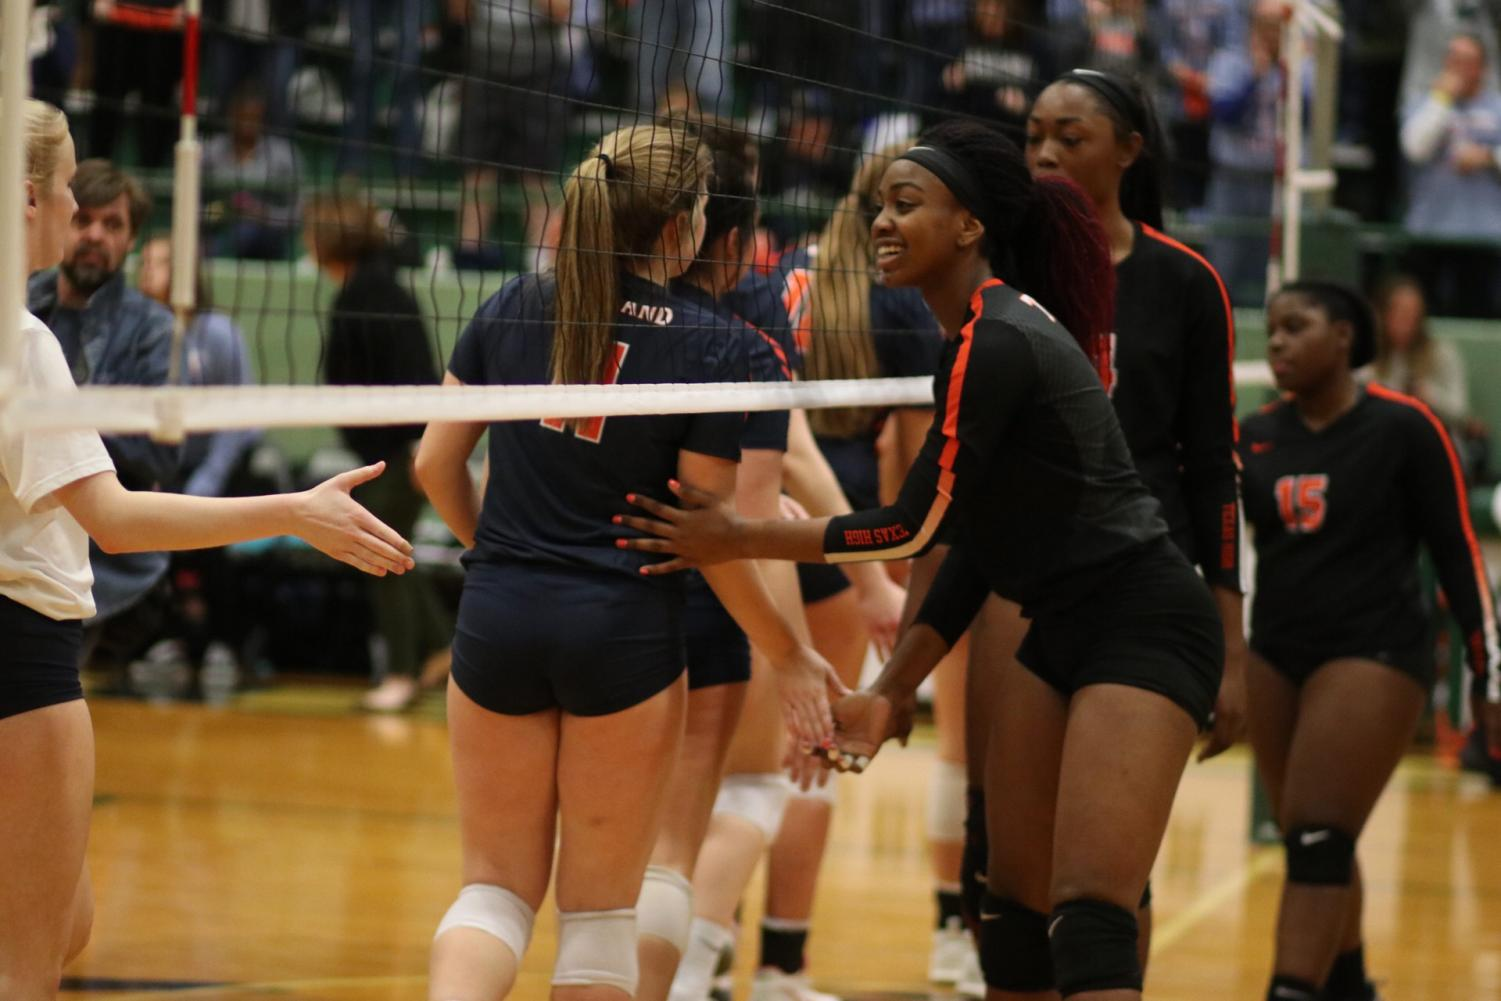 The Lady Tigers wish the Wakeland Wolverines good luck as they begin their first set. Texas High lost the regional semifinals in three sets after advancing in a historic season.